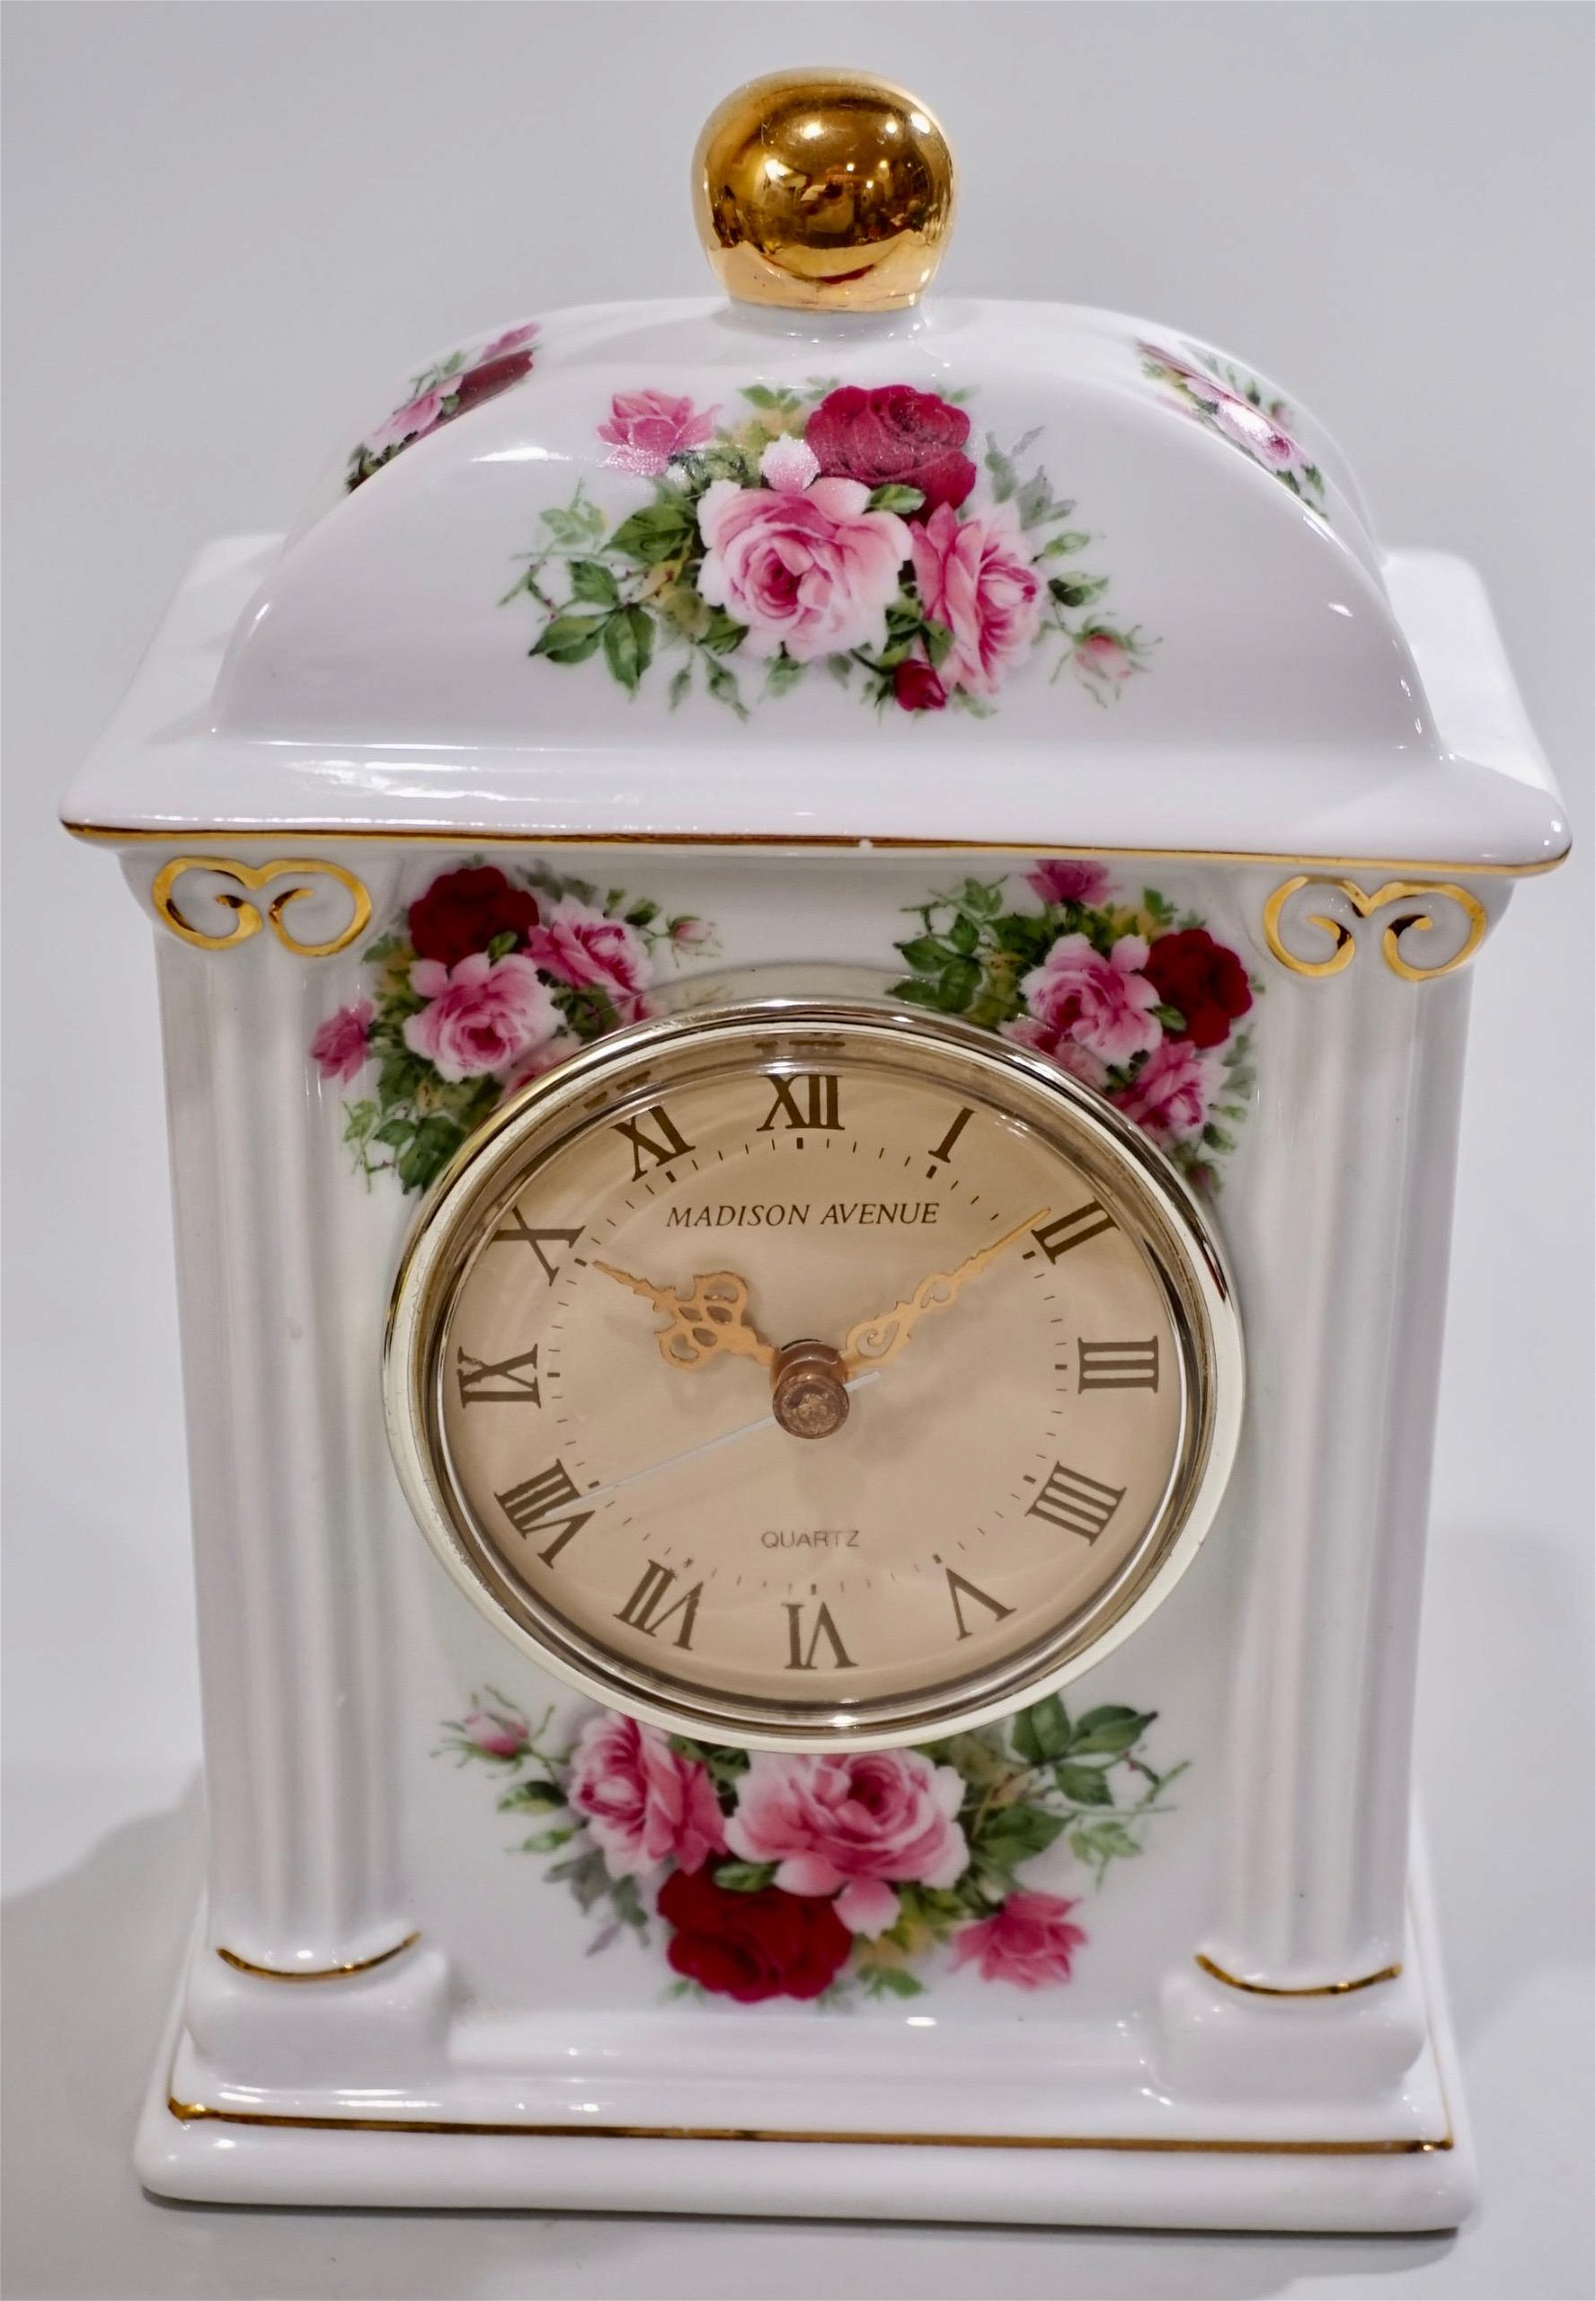 Madison Avenue Porcelain Clock in Working Condition